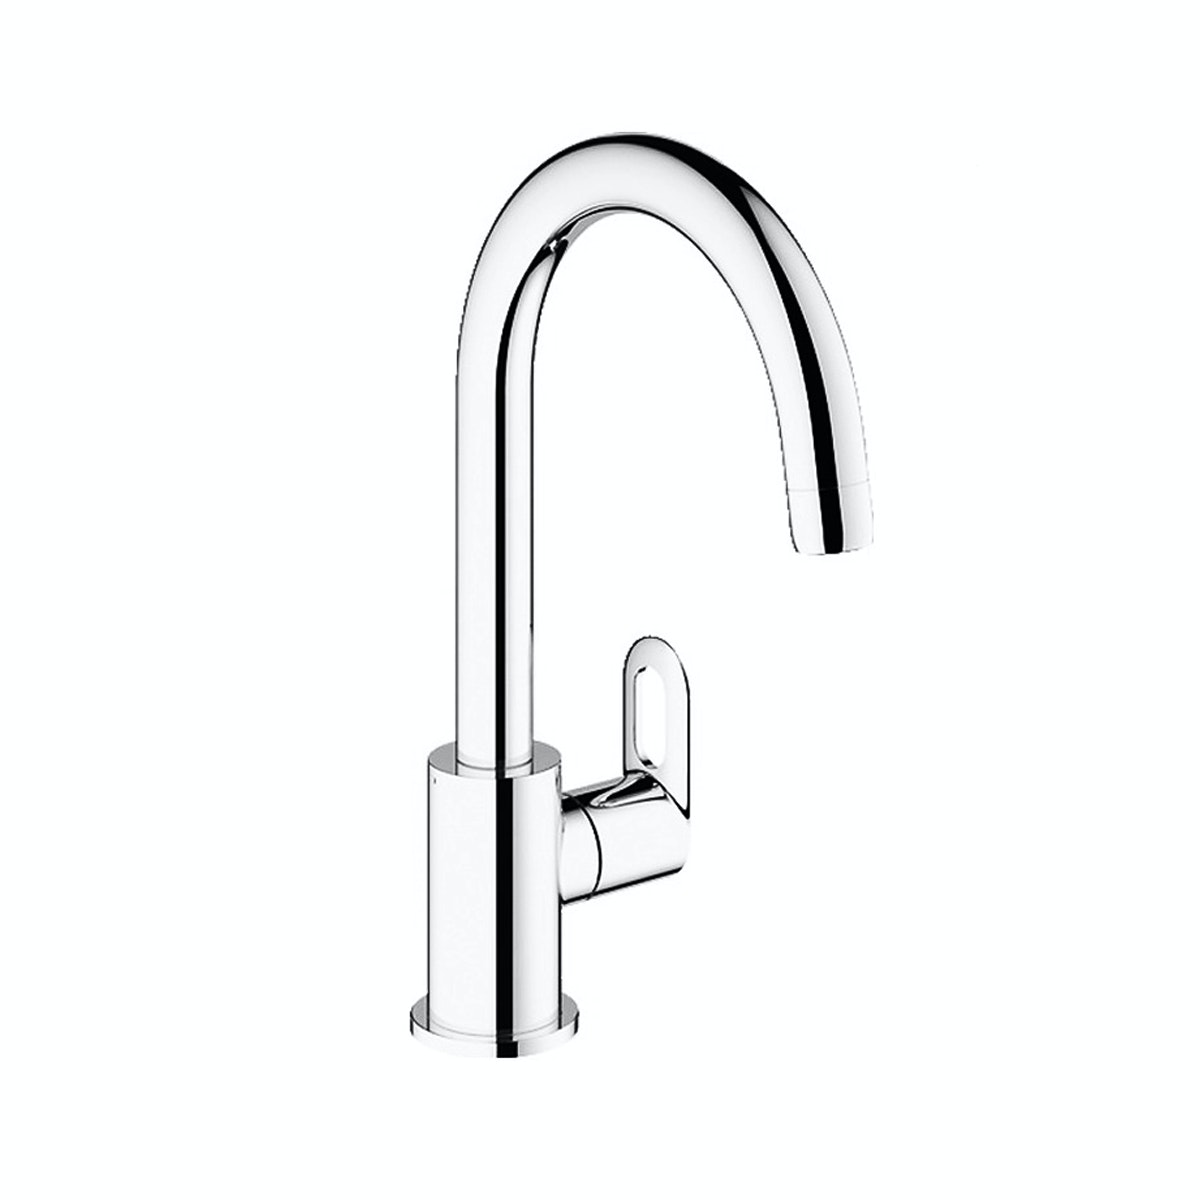 Grohe Kran Air Bauloop Pillar Tap Sink 31222000 - Chrome